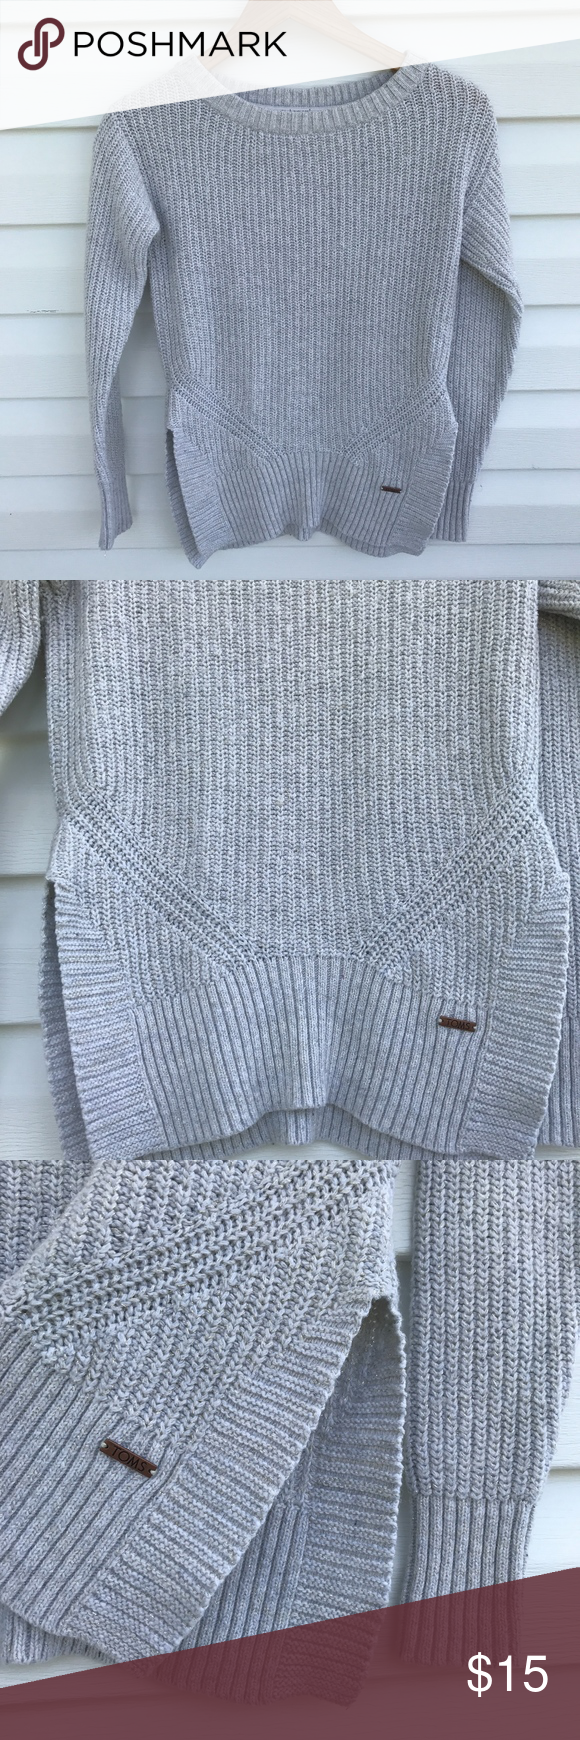 Toms Cable Knit Sweater | Cable knit sweaters, Boat neck and Cable ...